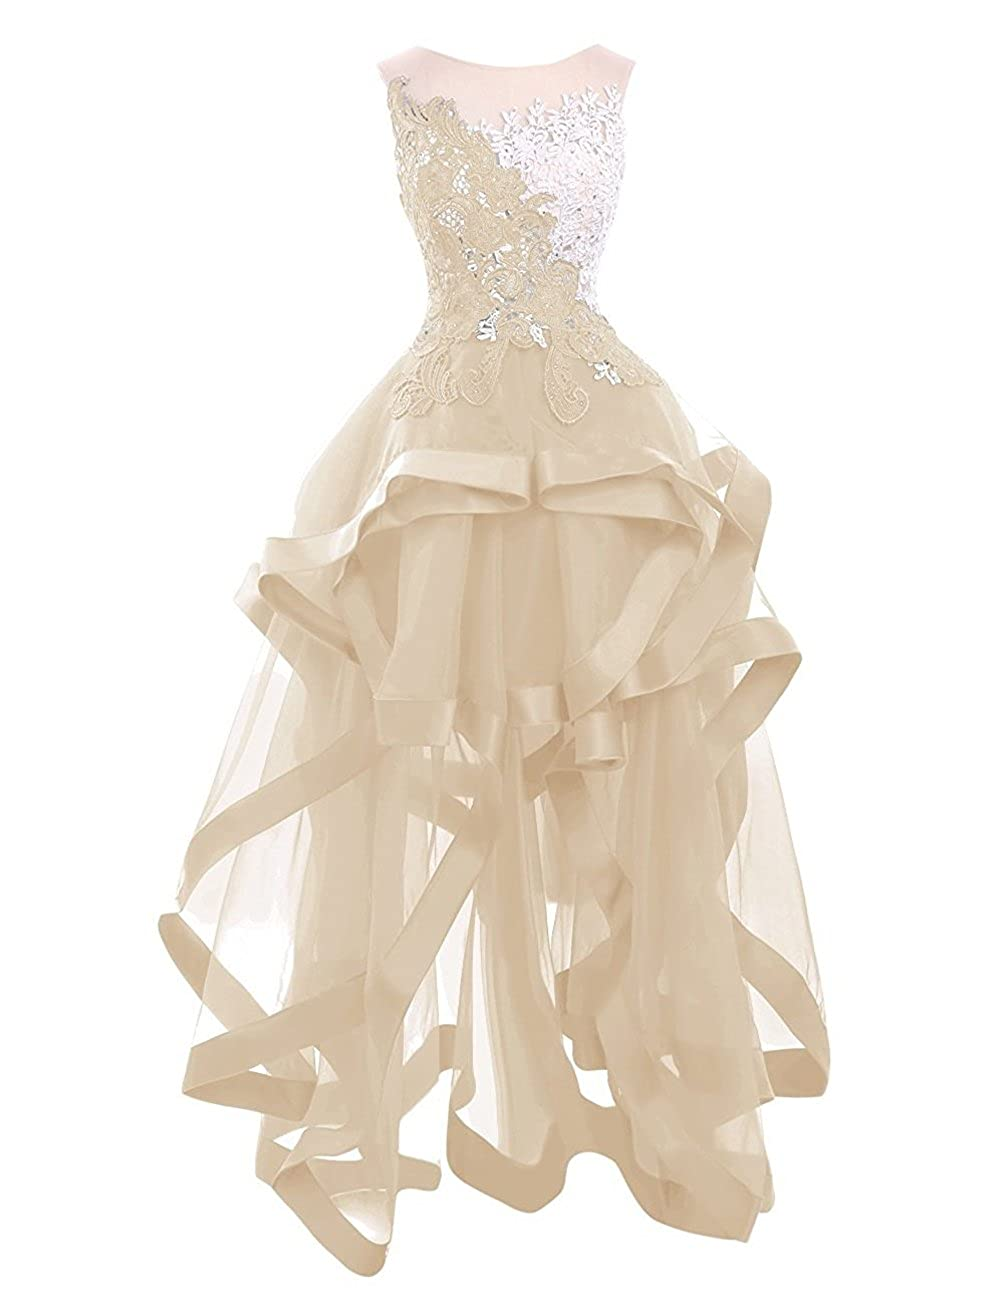 Style1champagne ZVOCY Women's Tulle Homecoming Dresses Appliques Beads Short Prom Cocktail Party Dress